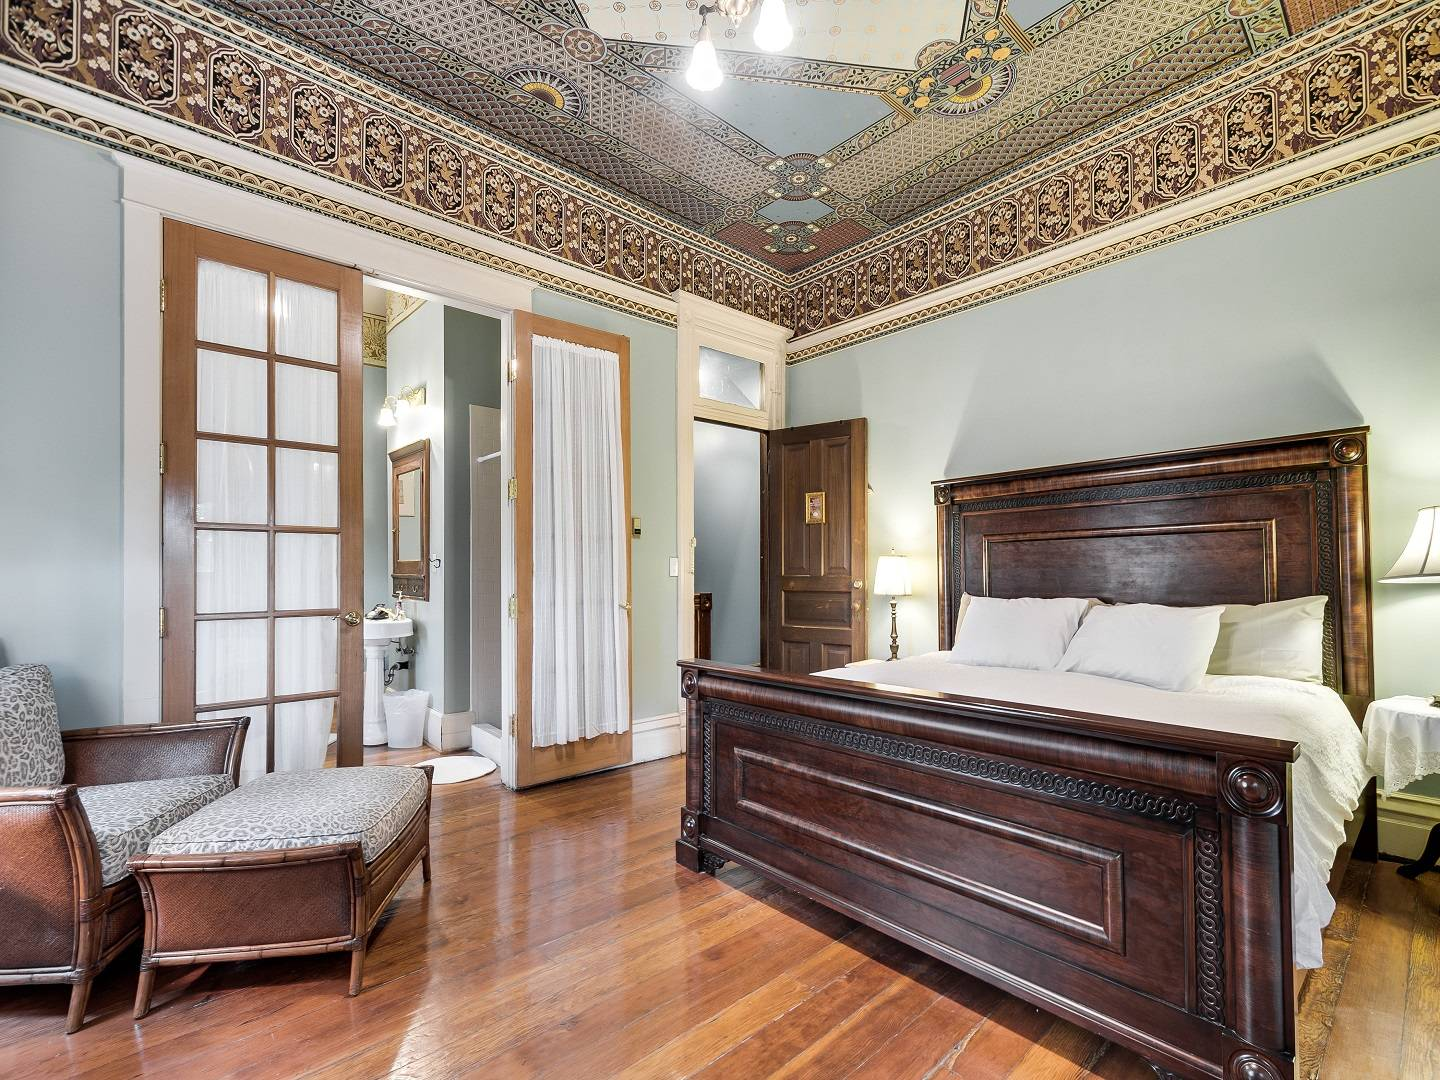 A bedroom with a bed and a chair in a room at Lumber Baron Inn.